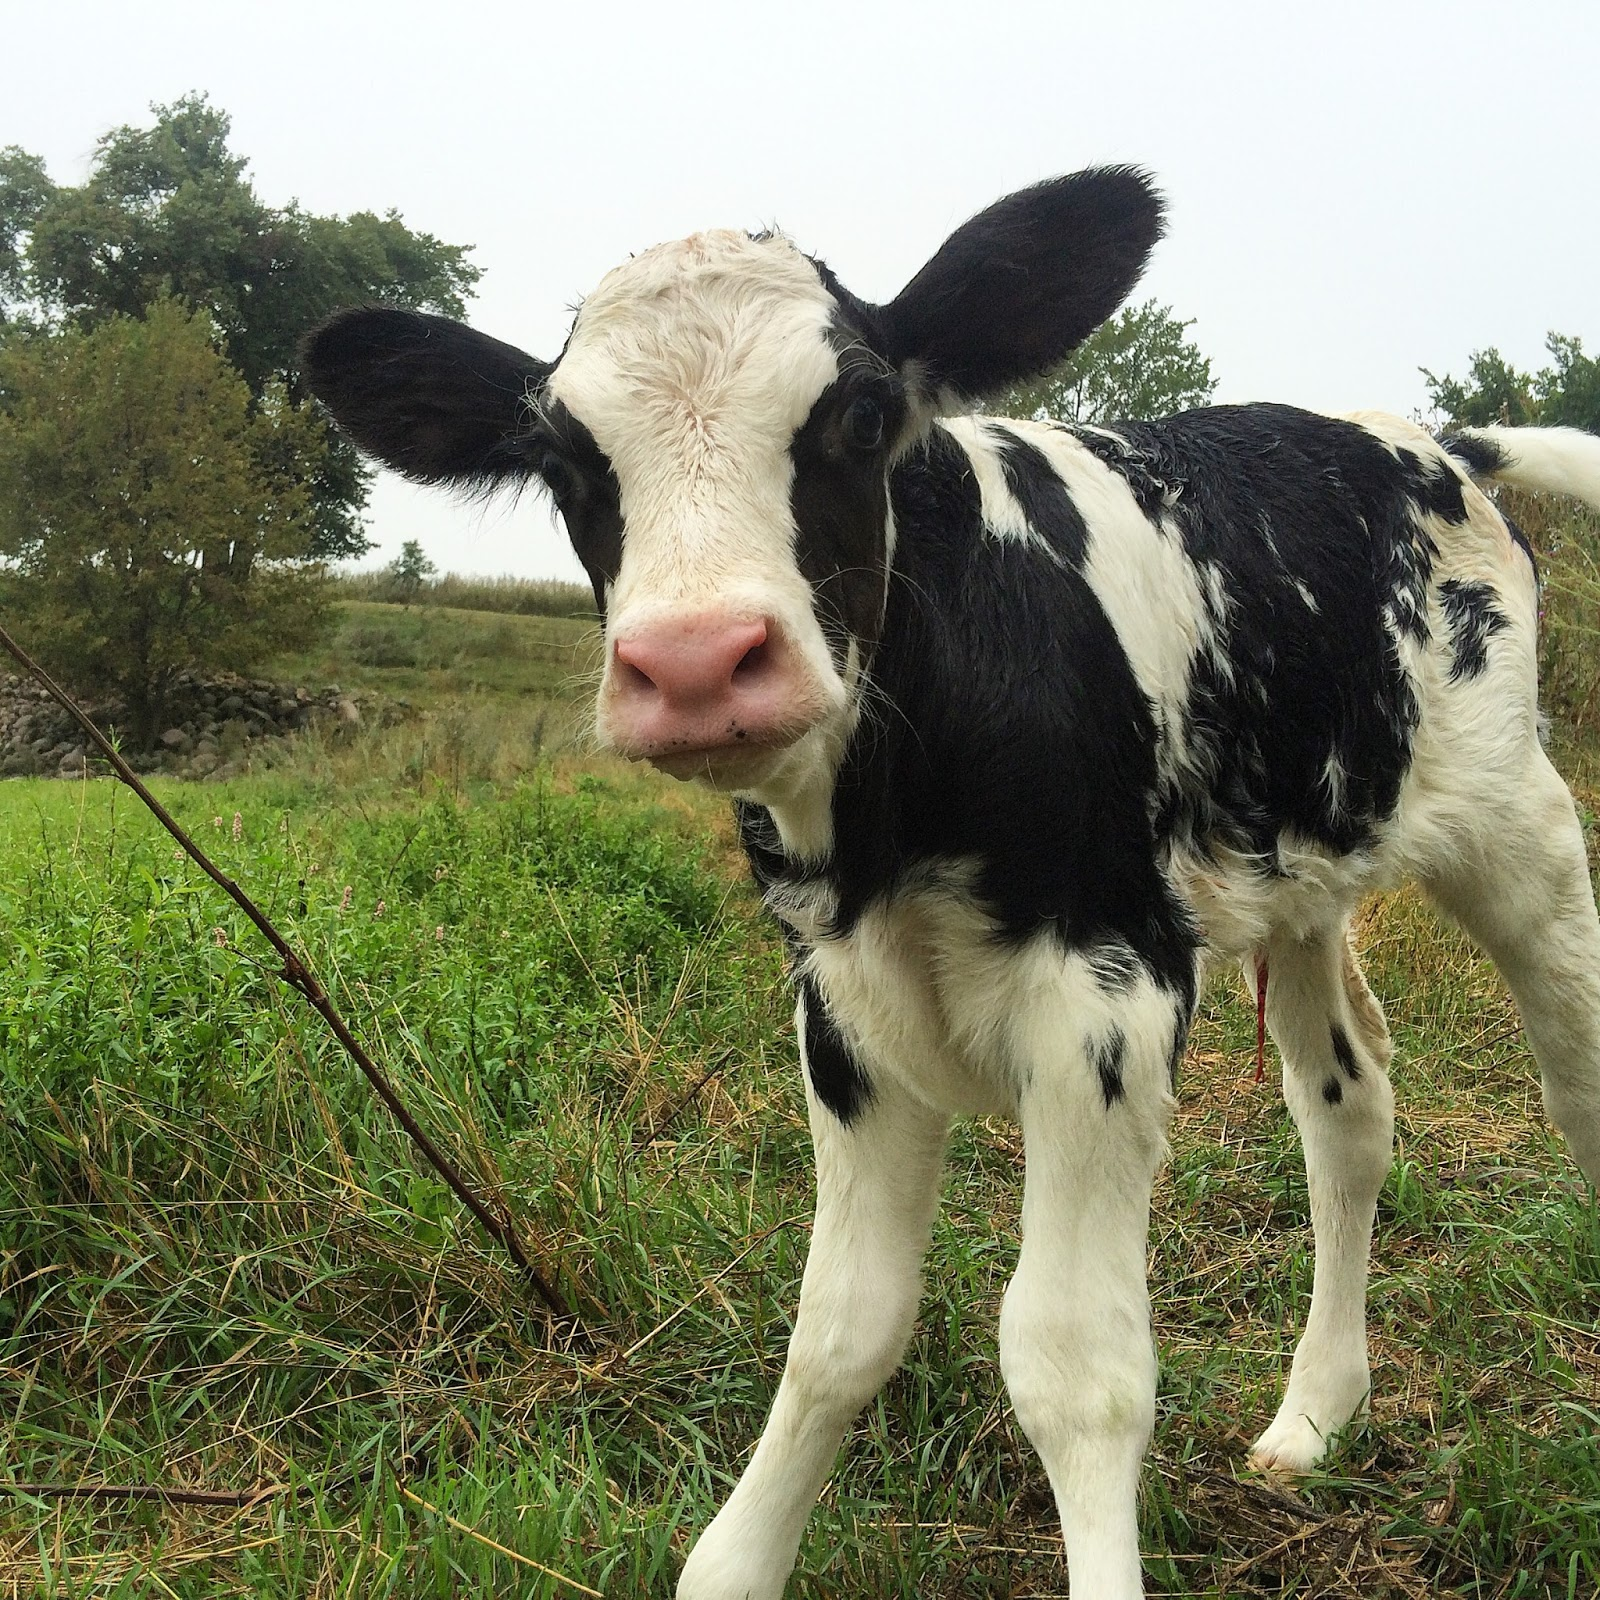 newborn Holstein heifer calf in pasture